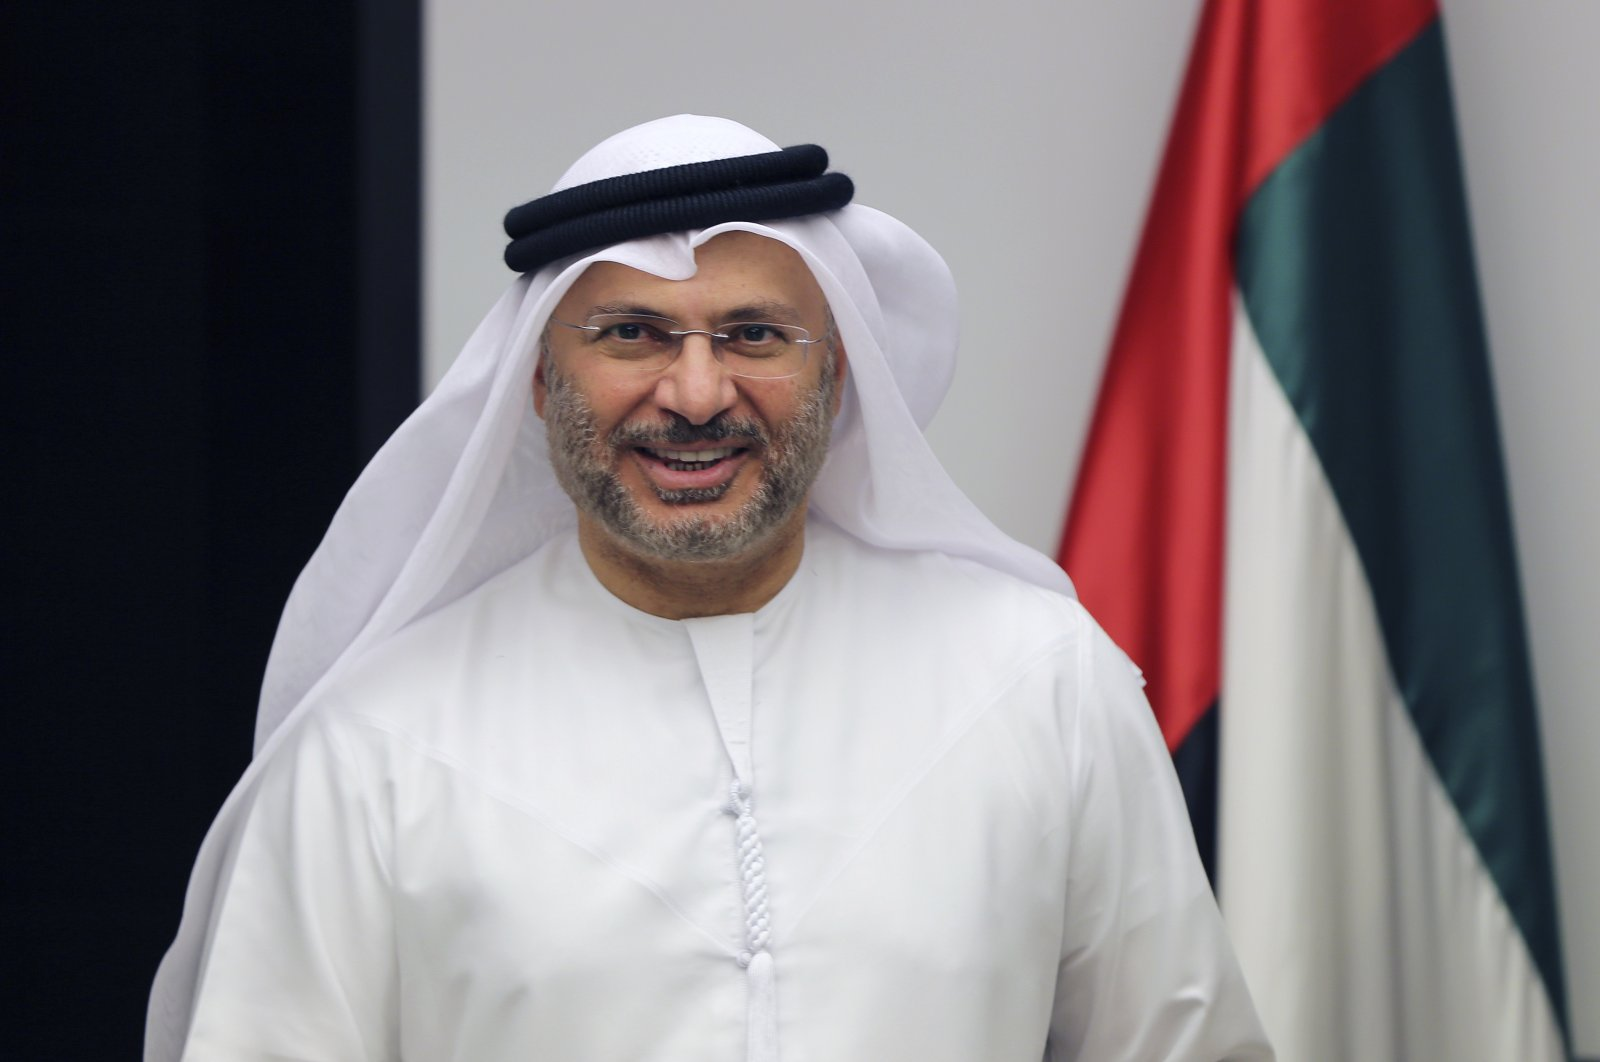 Anwar Gargash, UAE minister of state for foreign affairs, arrives for a press conference in Dubai, United Arab Emirates, June 24, 2017. (AP Photo)